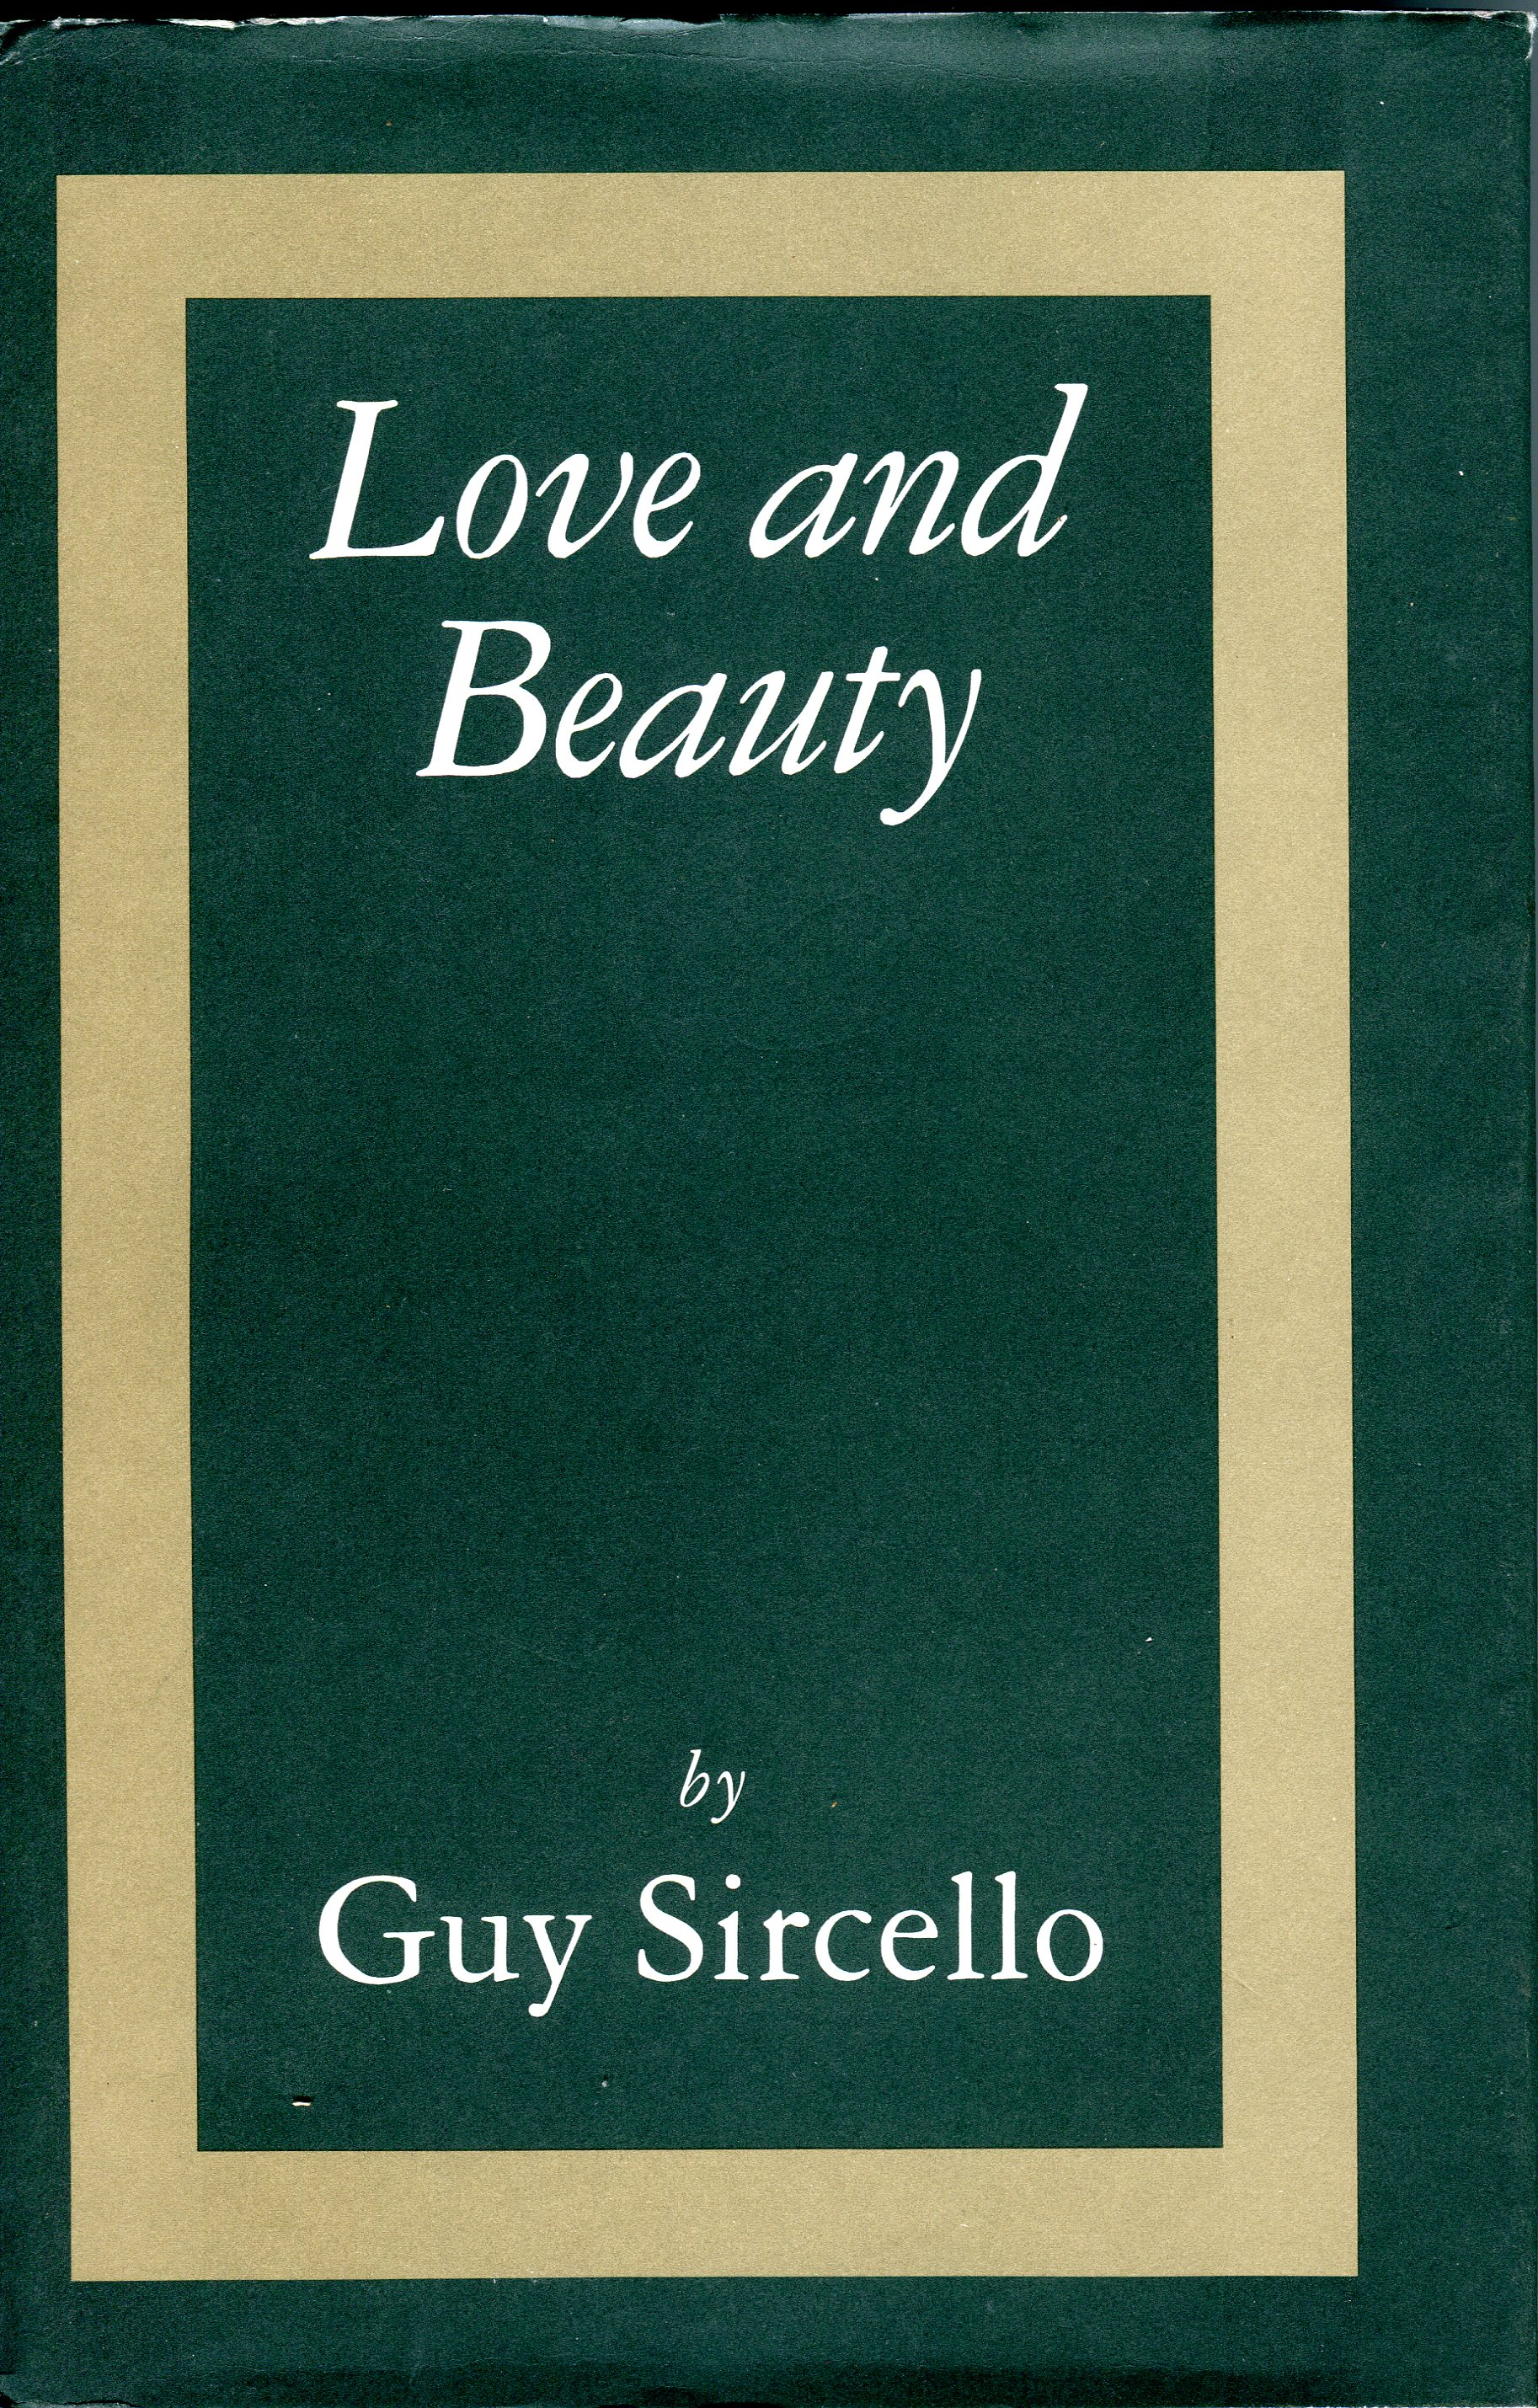 Guy Sircello001